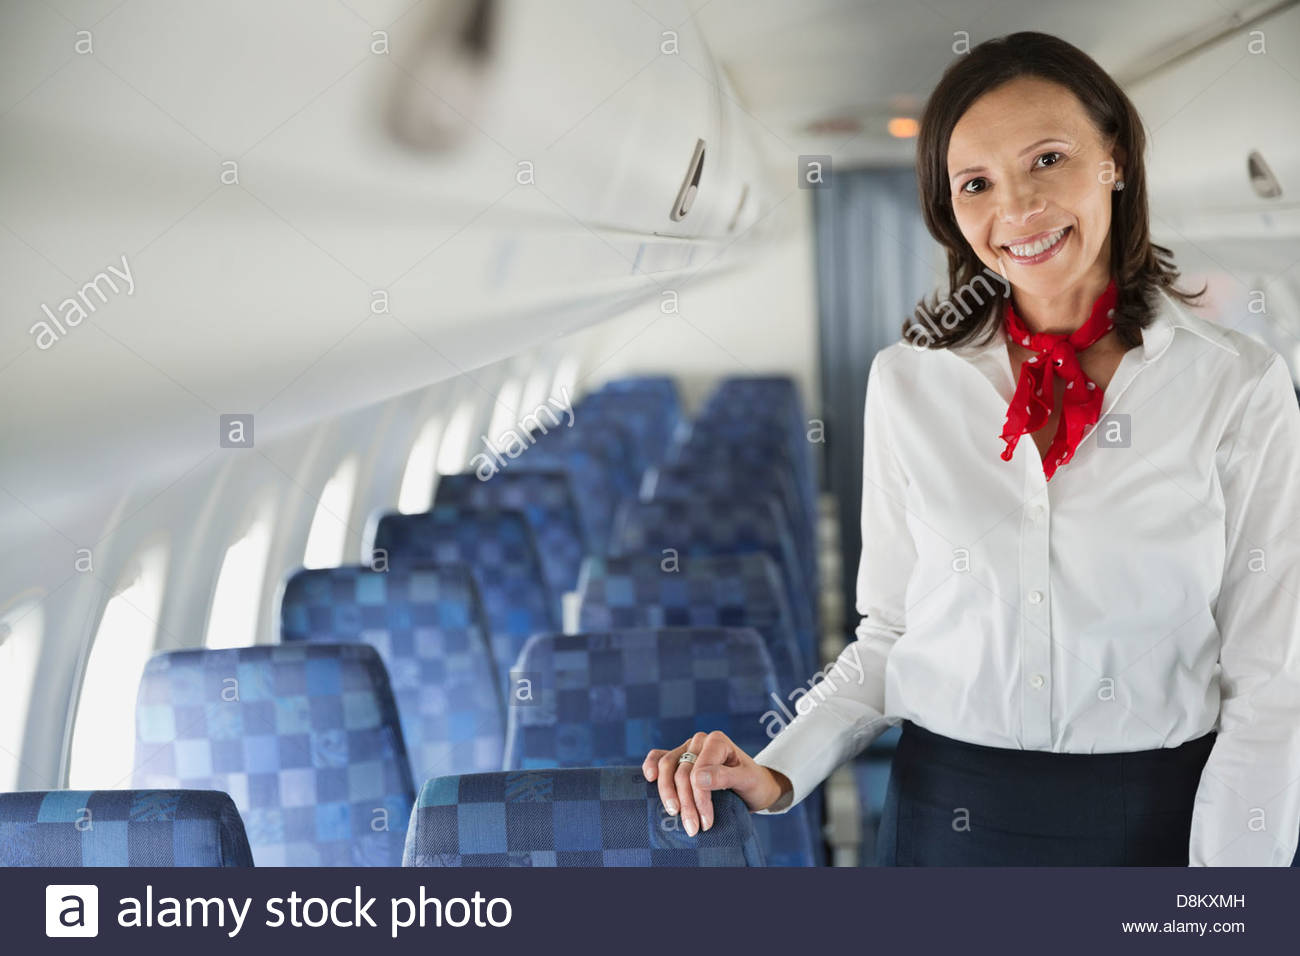 Portrait of flight attendant standing in airplane cabin - Stock Image